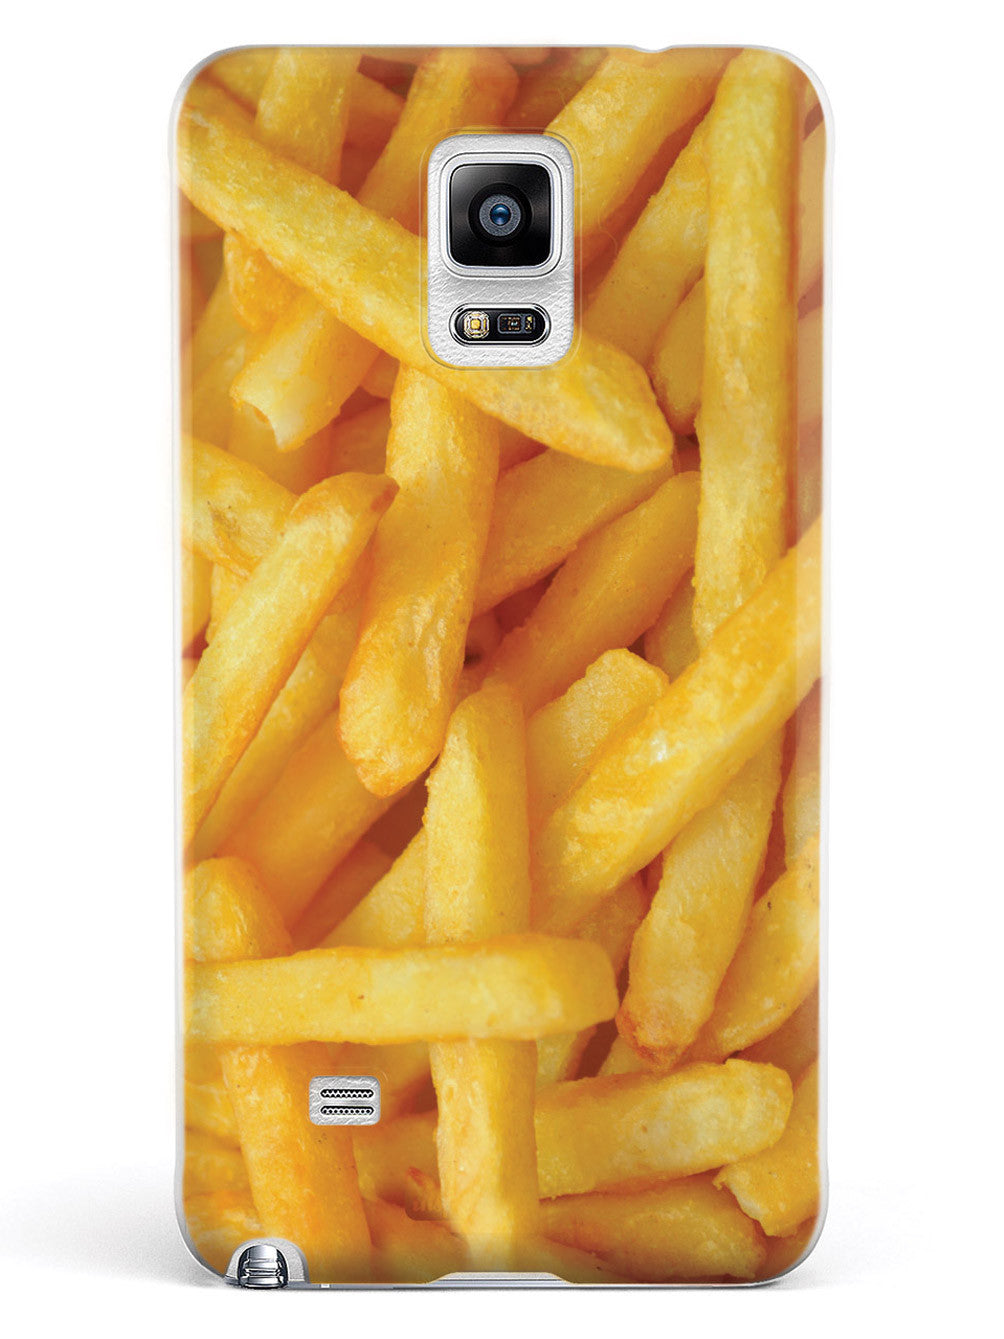 French Fries - Fast Food Case